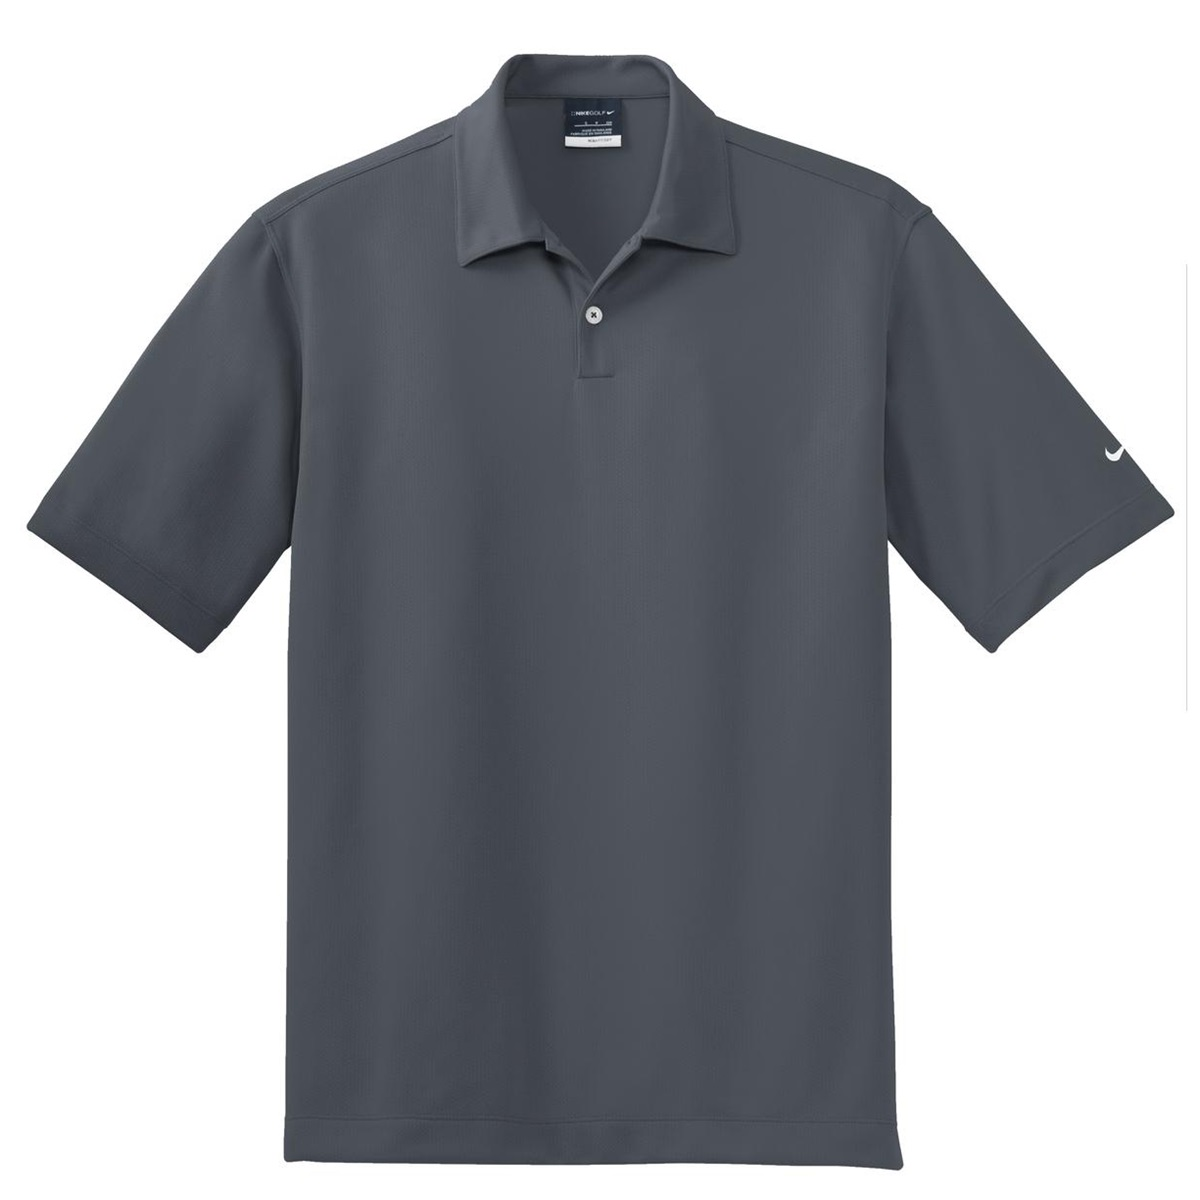 Nike Golf 373749 Dri Fit Pebble Texture Polo Dark Grey